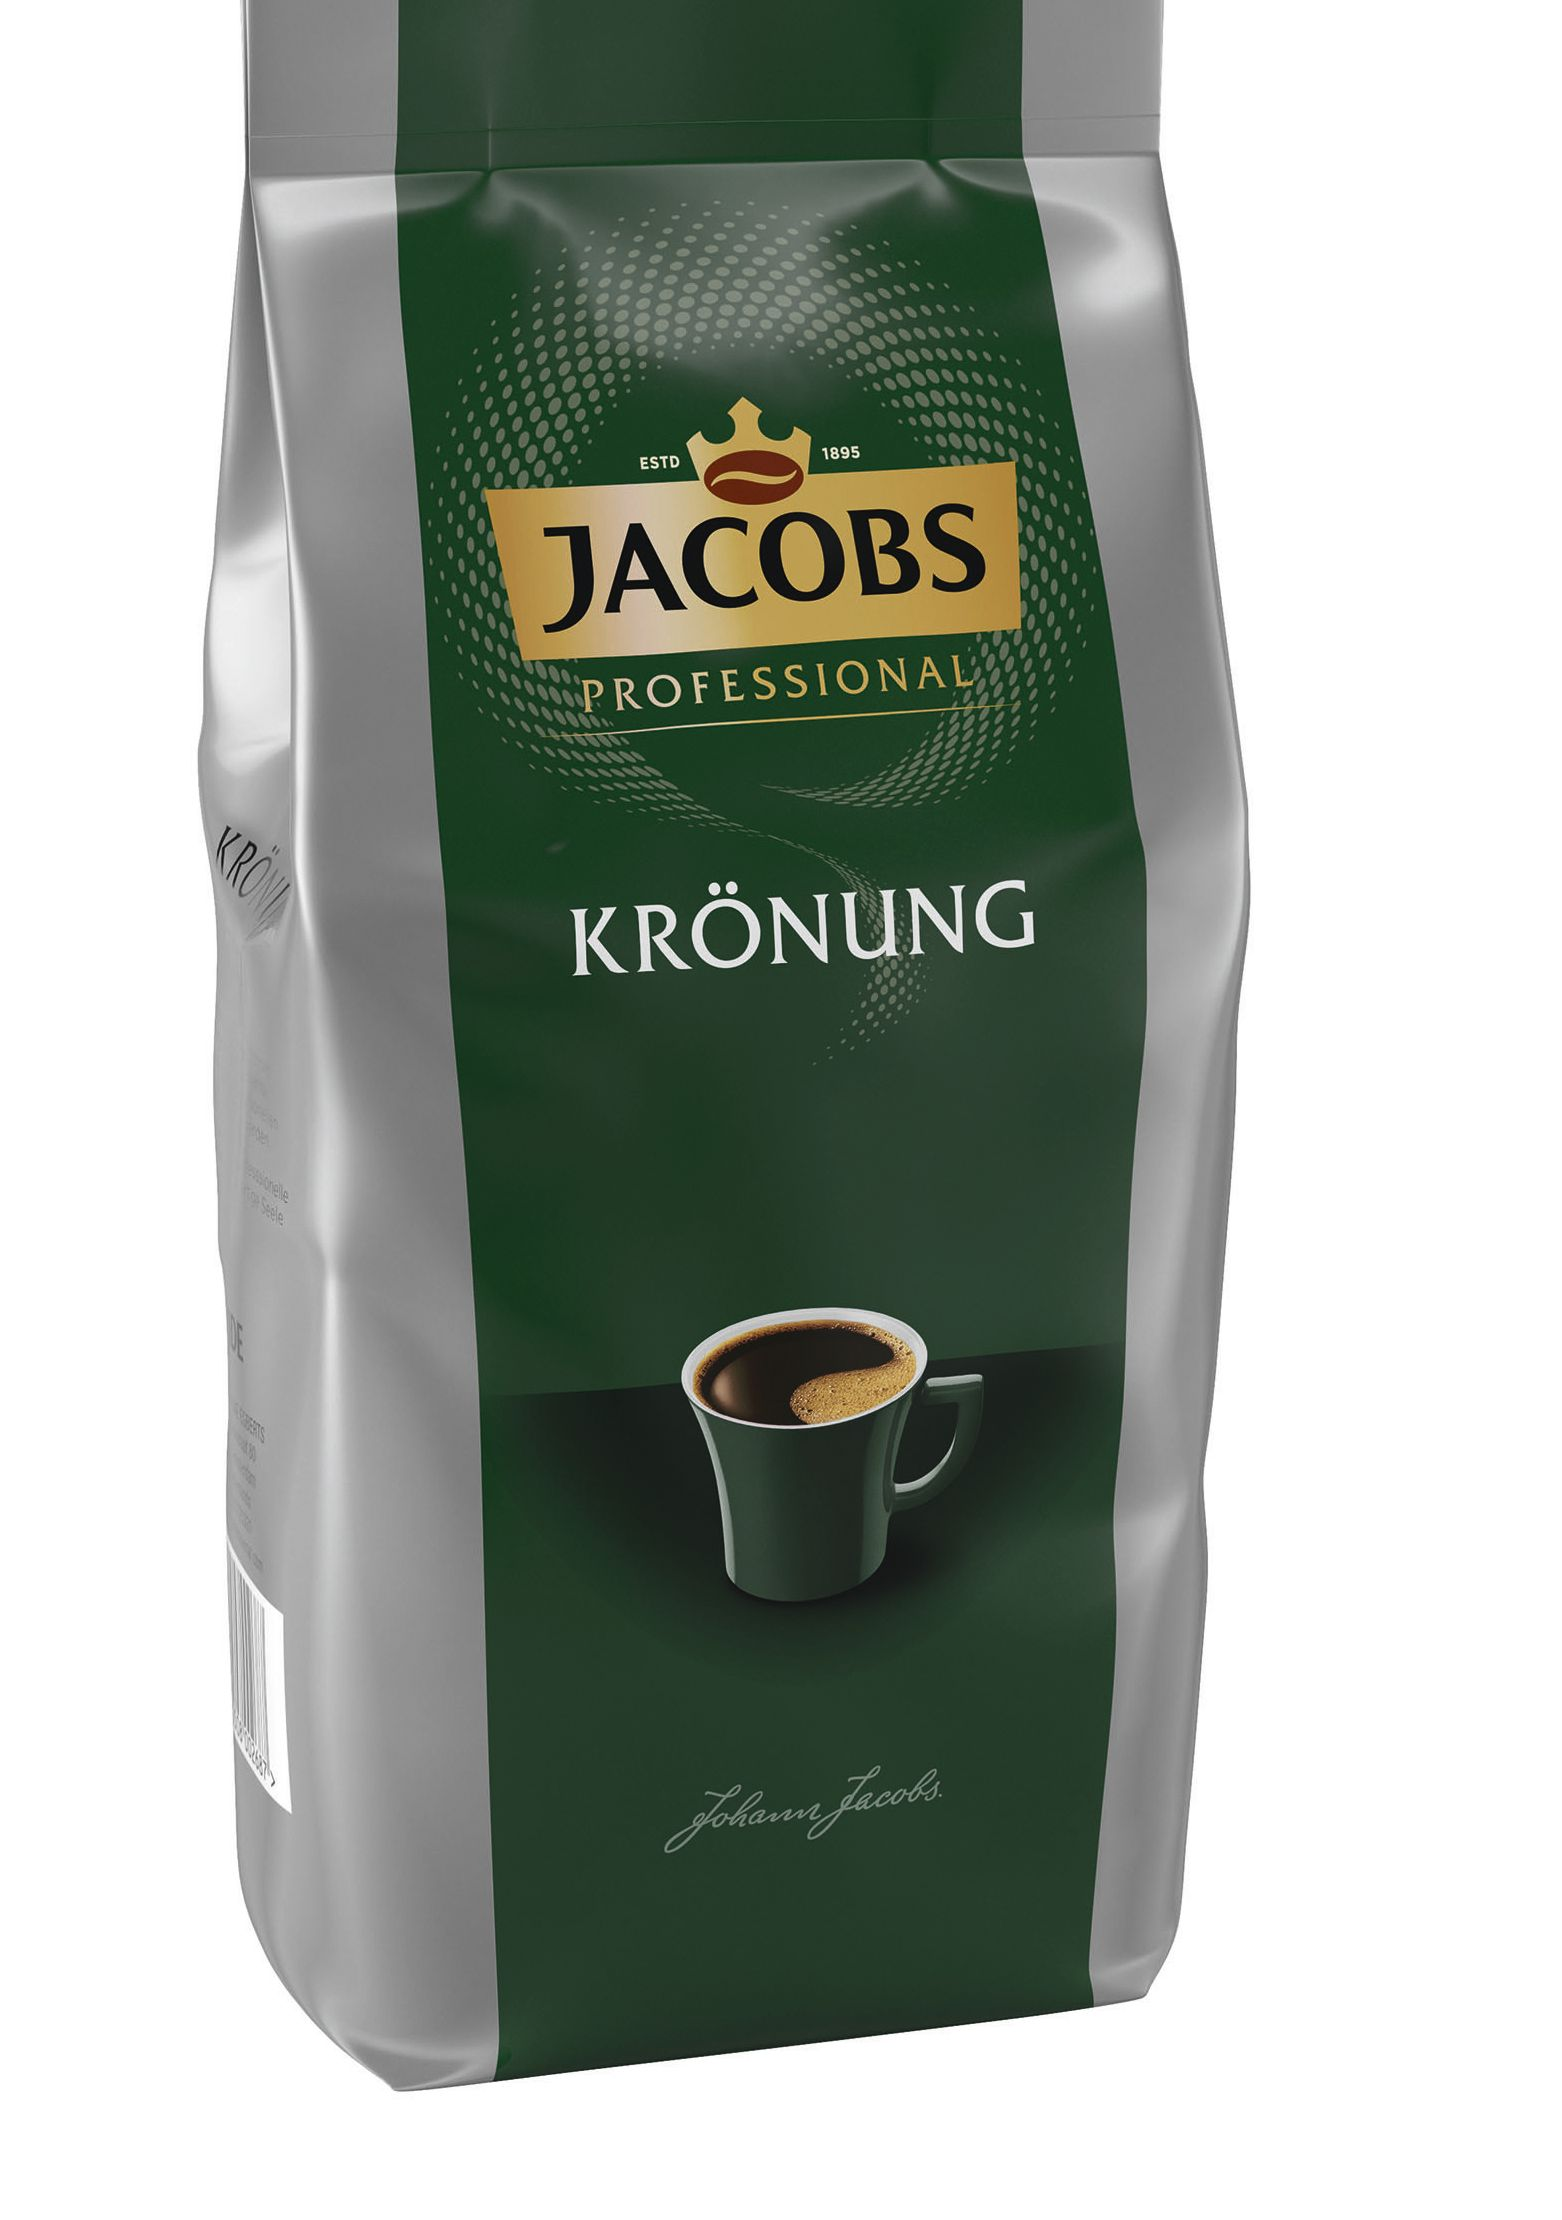 jacobs kr nung kaffee in gastronomie qualit t gemahlen g nstig kaufen sch fer shop. Black Bedroom Furniture Sets. Home Design Ideas